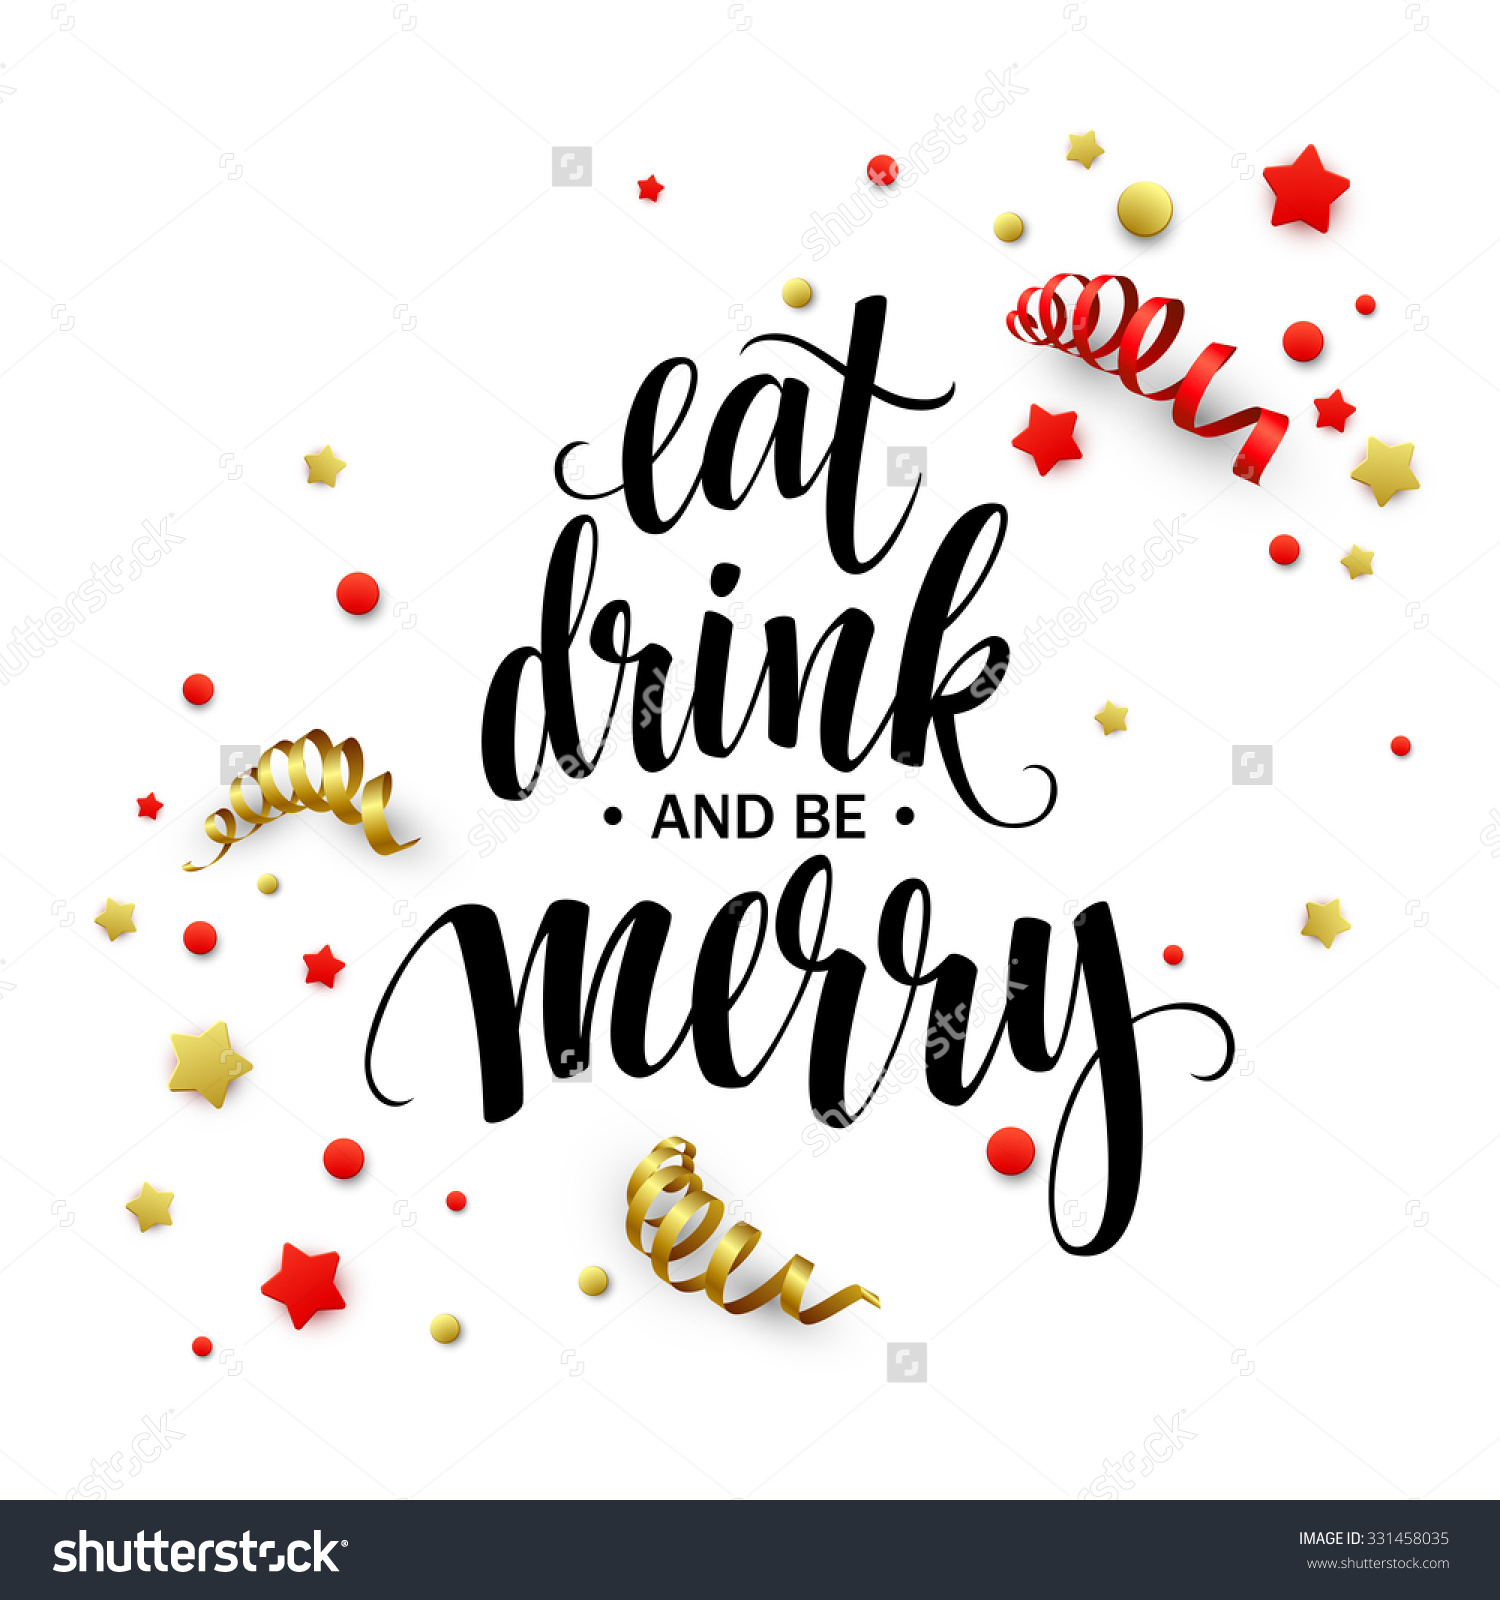 Eat Drink and Be Merry Clip Art.